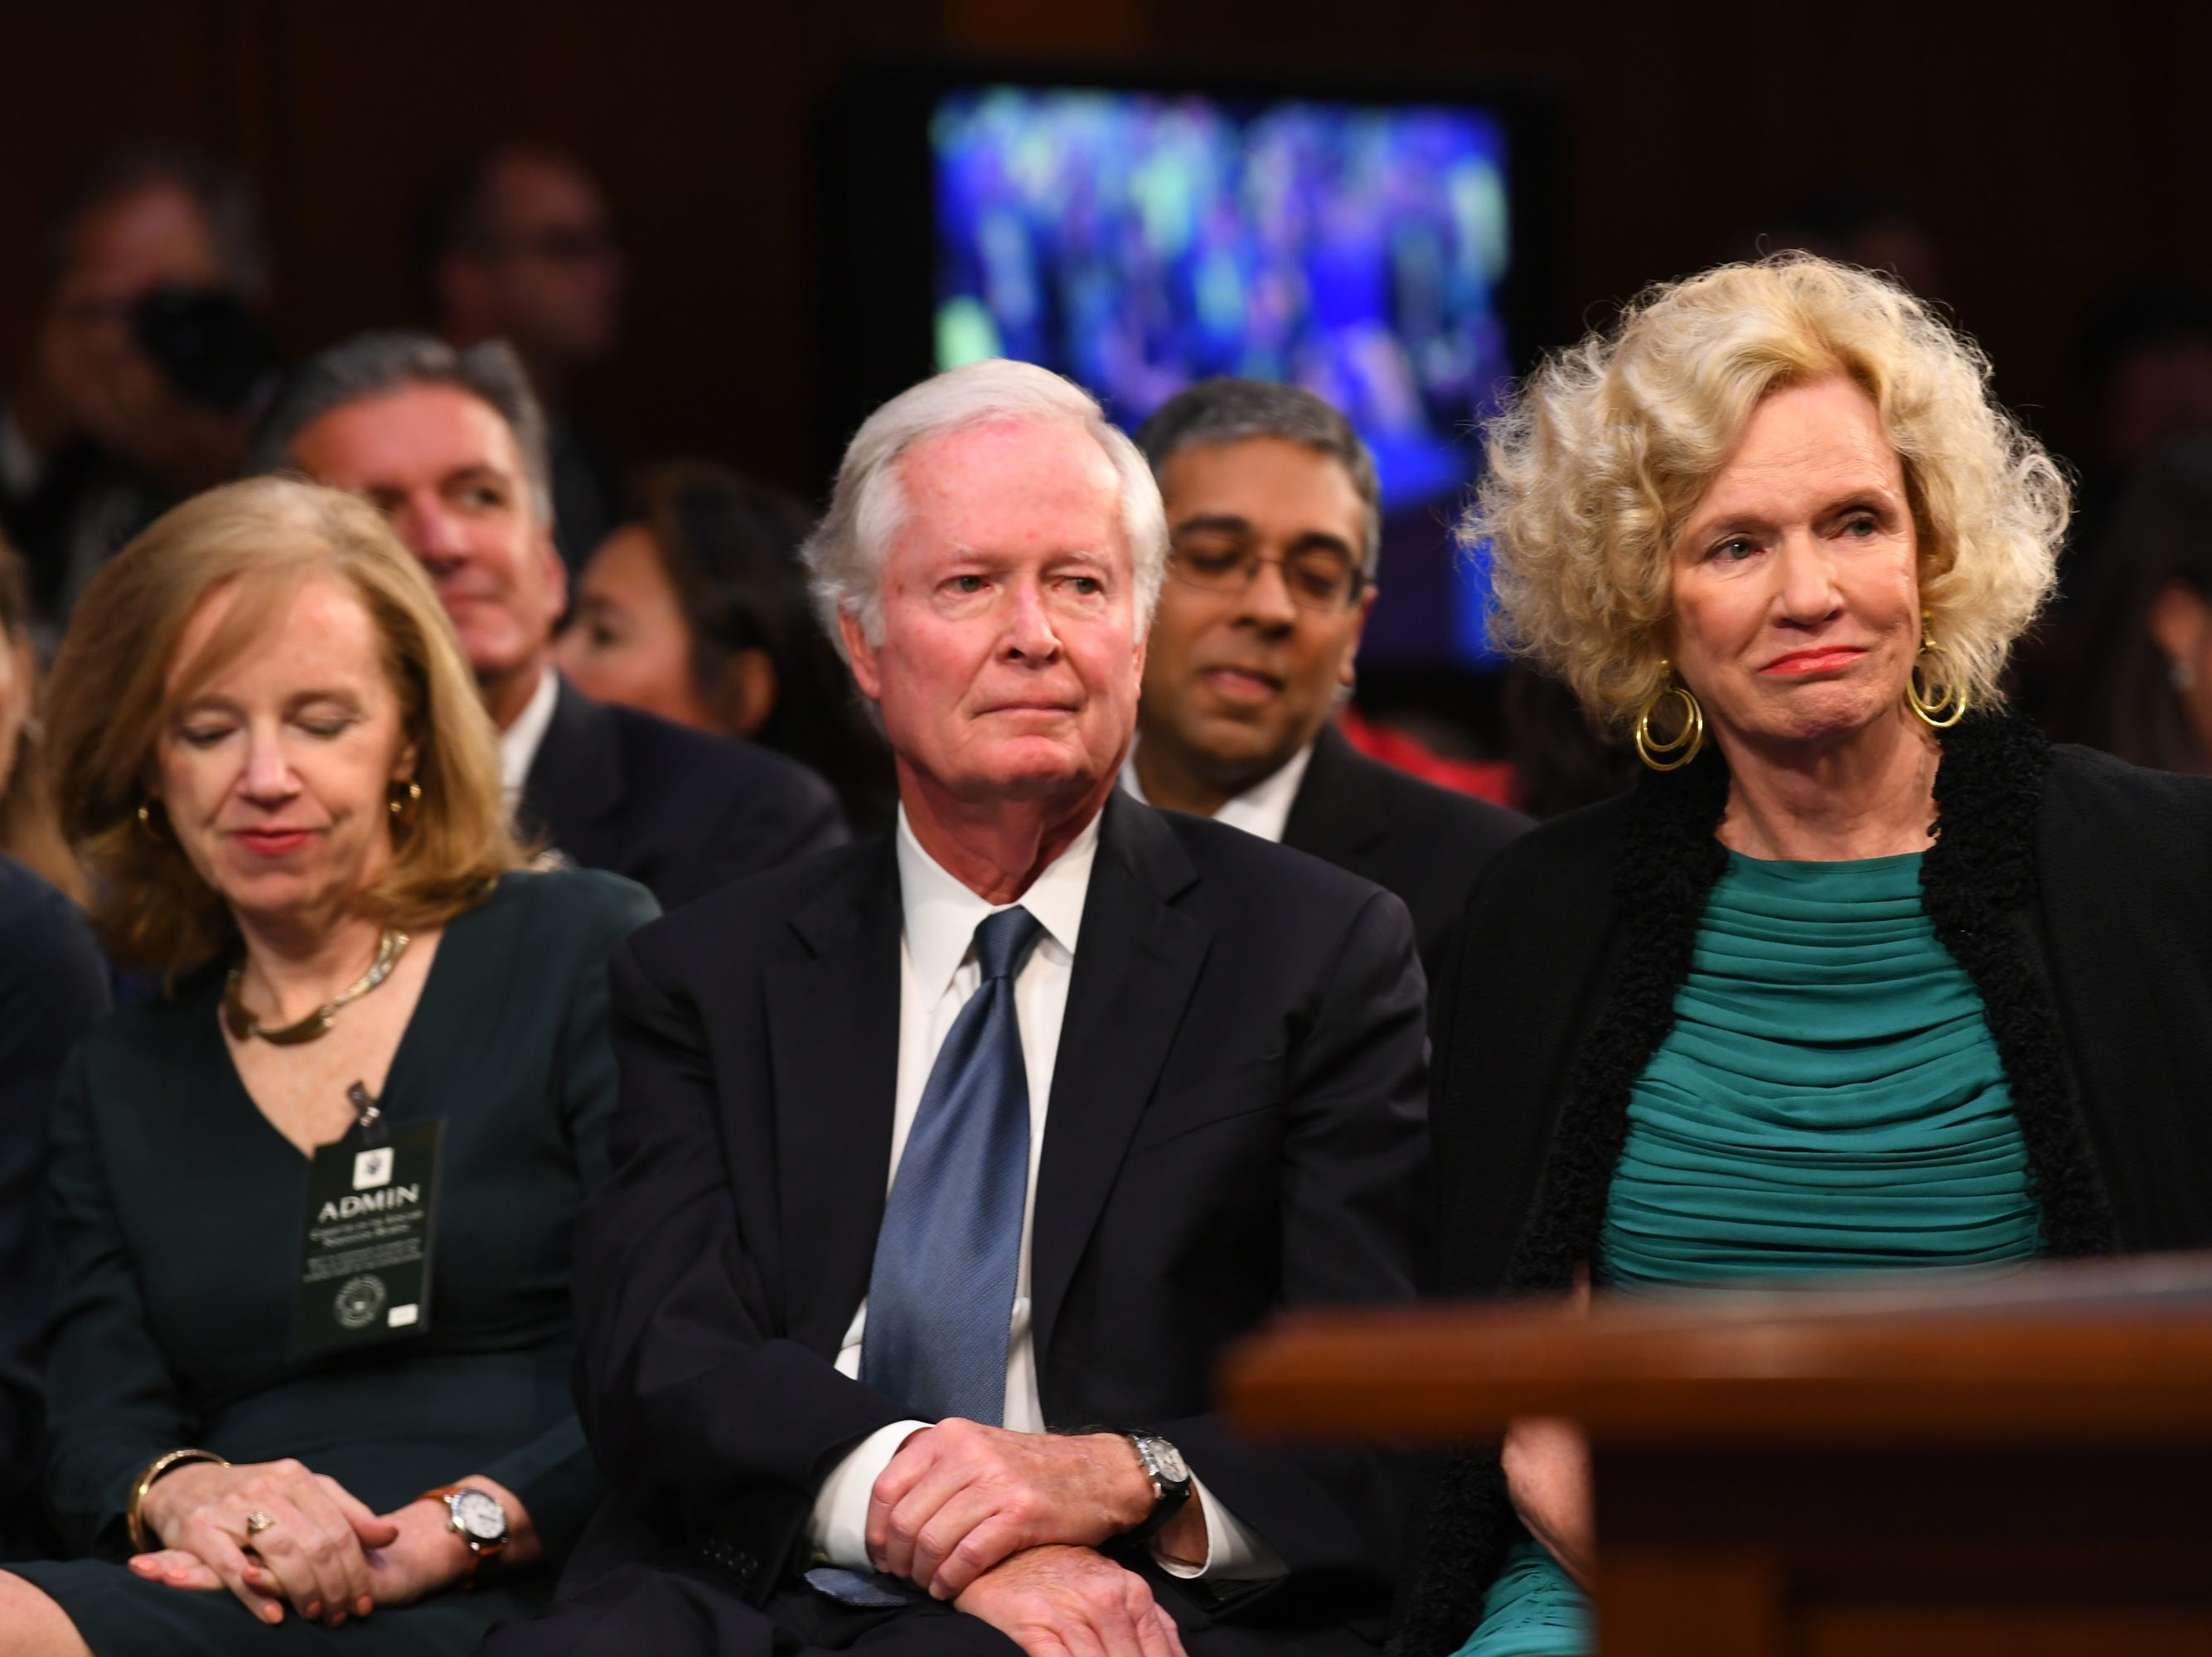 Everett Kavanaugh Jr. and Martha Kavanaugh, the parents of Supreme Court Associate Justice nominee Brett Kavanaugh, listen during the hearing